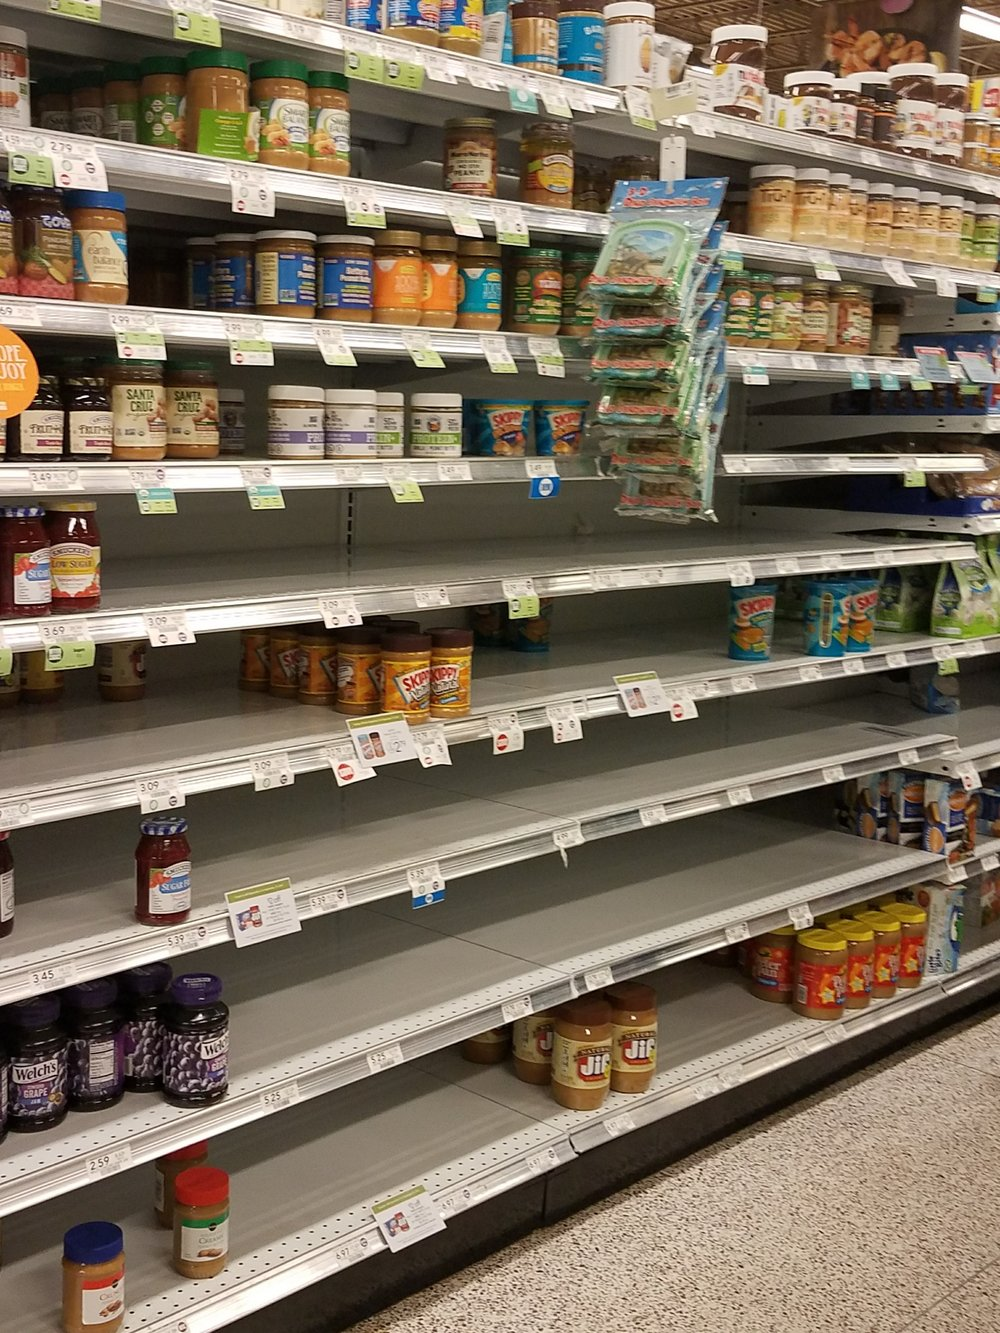 Peanut butter is a staple, evidently, for hurricanes.